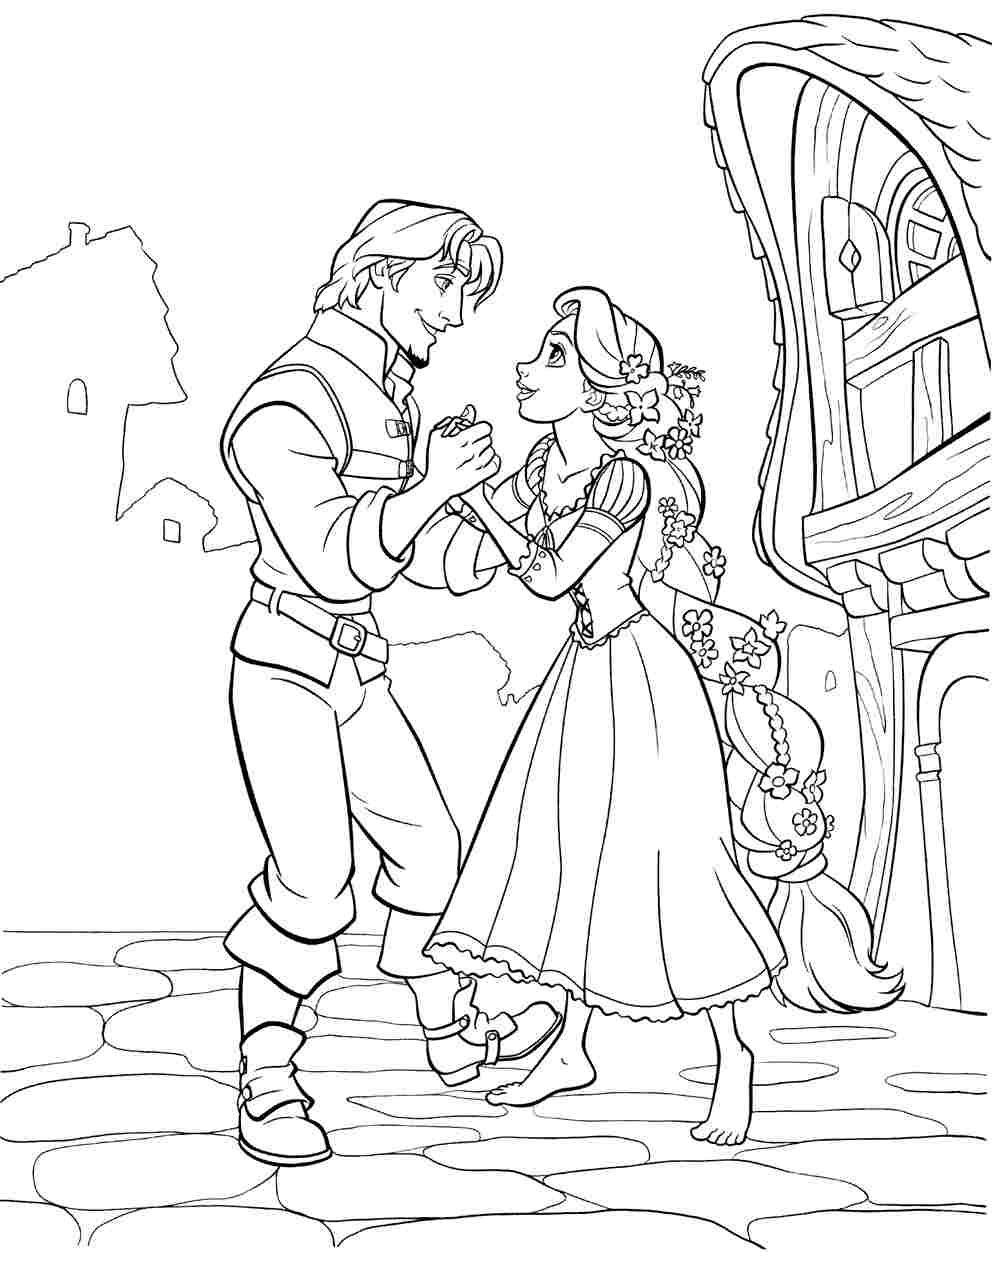 Rapunzel Neu Verföhnt Ausmalbilder Kostenlos : Disney Princess Tangled Rapunzel Coloring Sheets Free Printable For